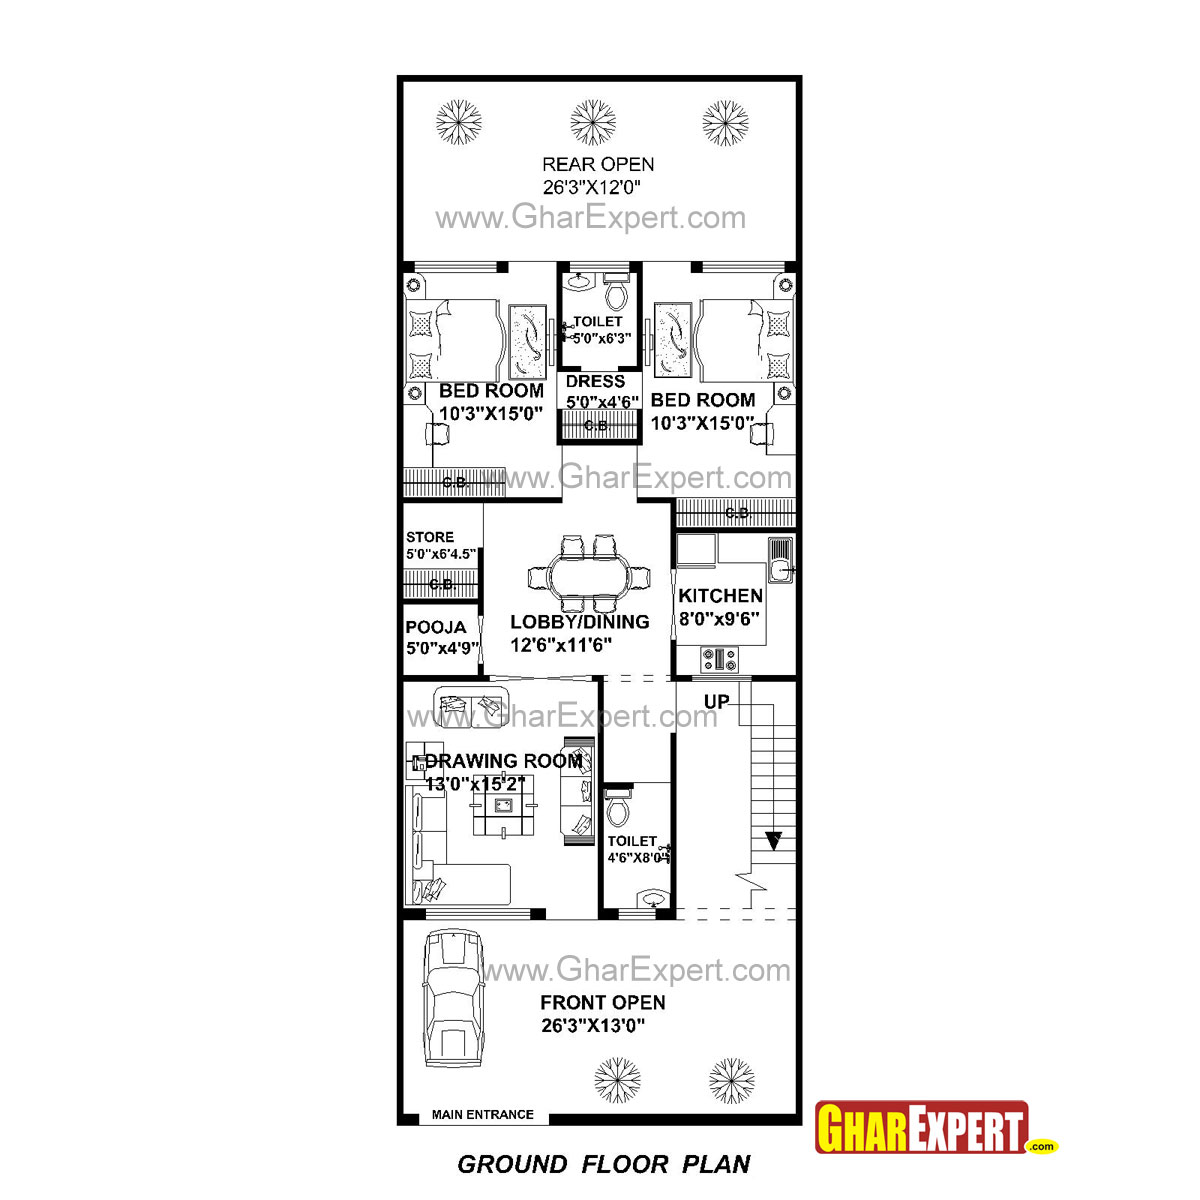 Rectangular House Plans Floor From Auto Hornet 533t Security Wiring Diagrams Plan For 27 Feet By 70 Plot Size 210